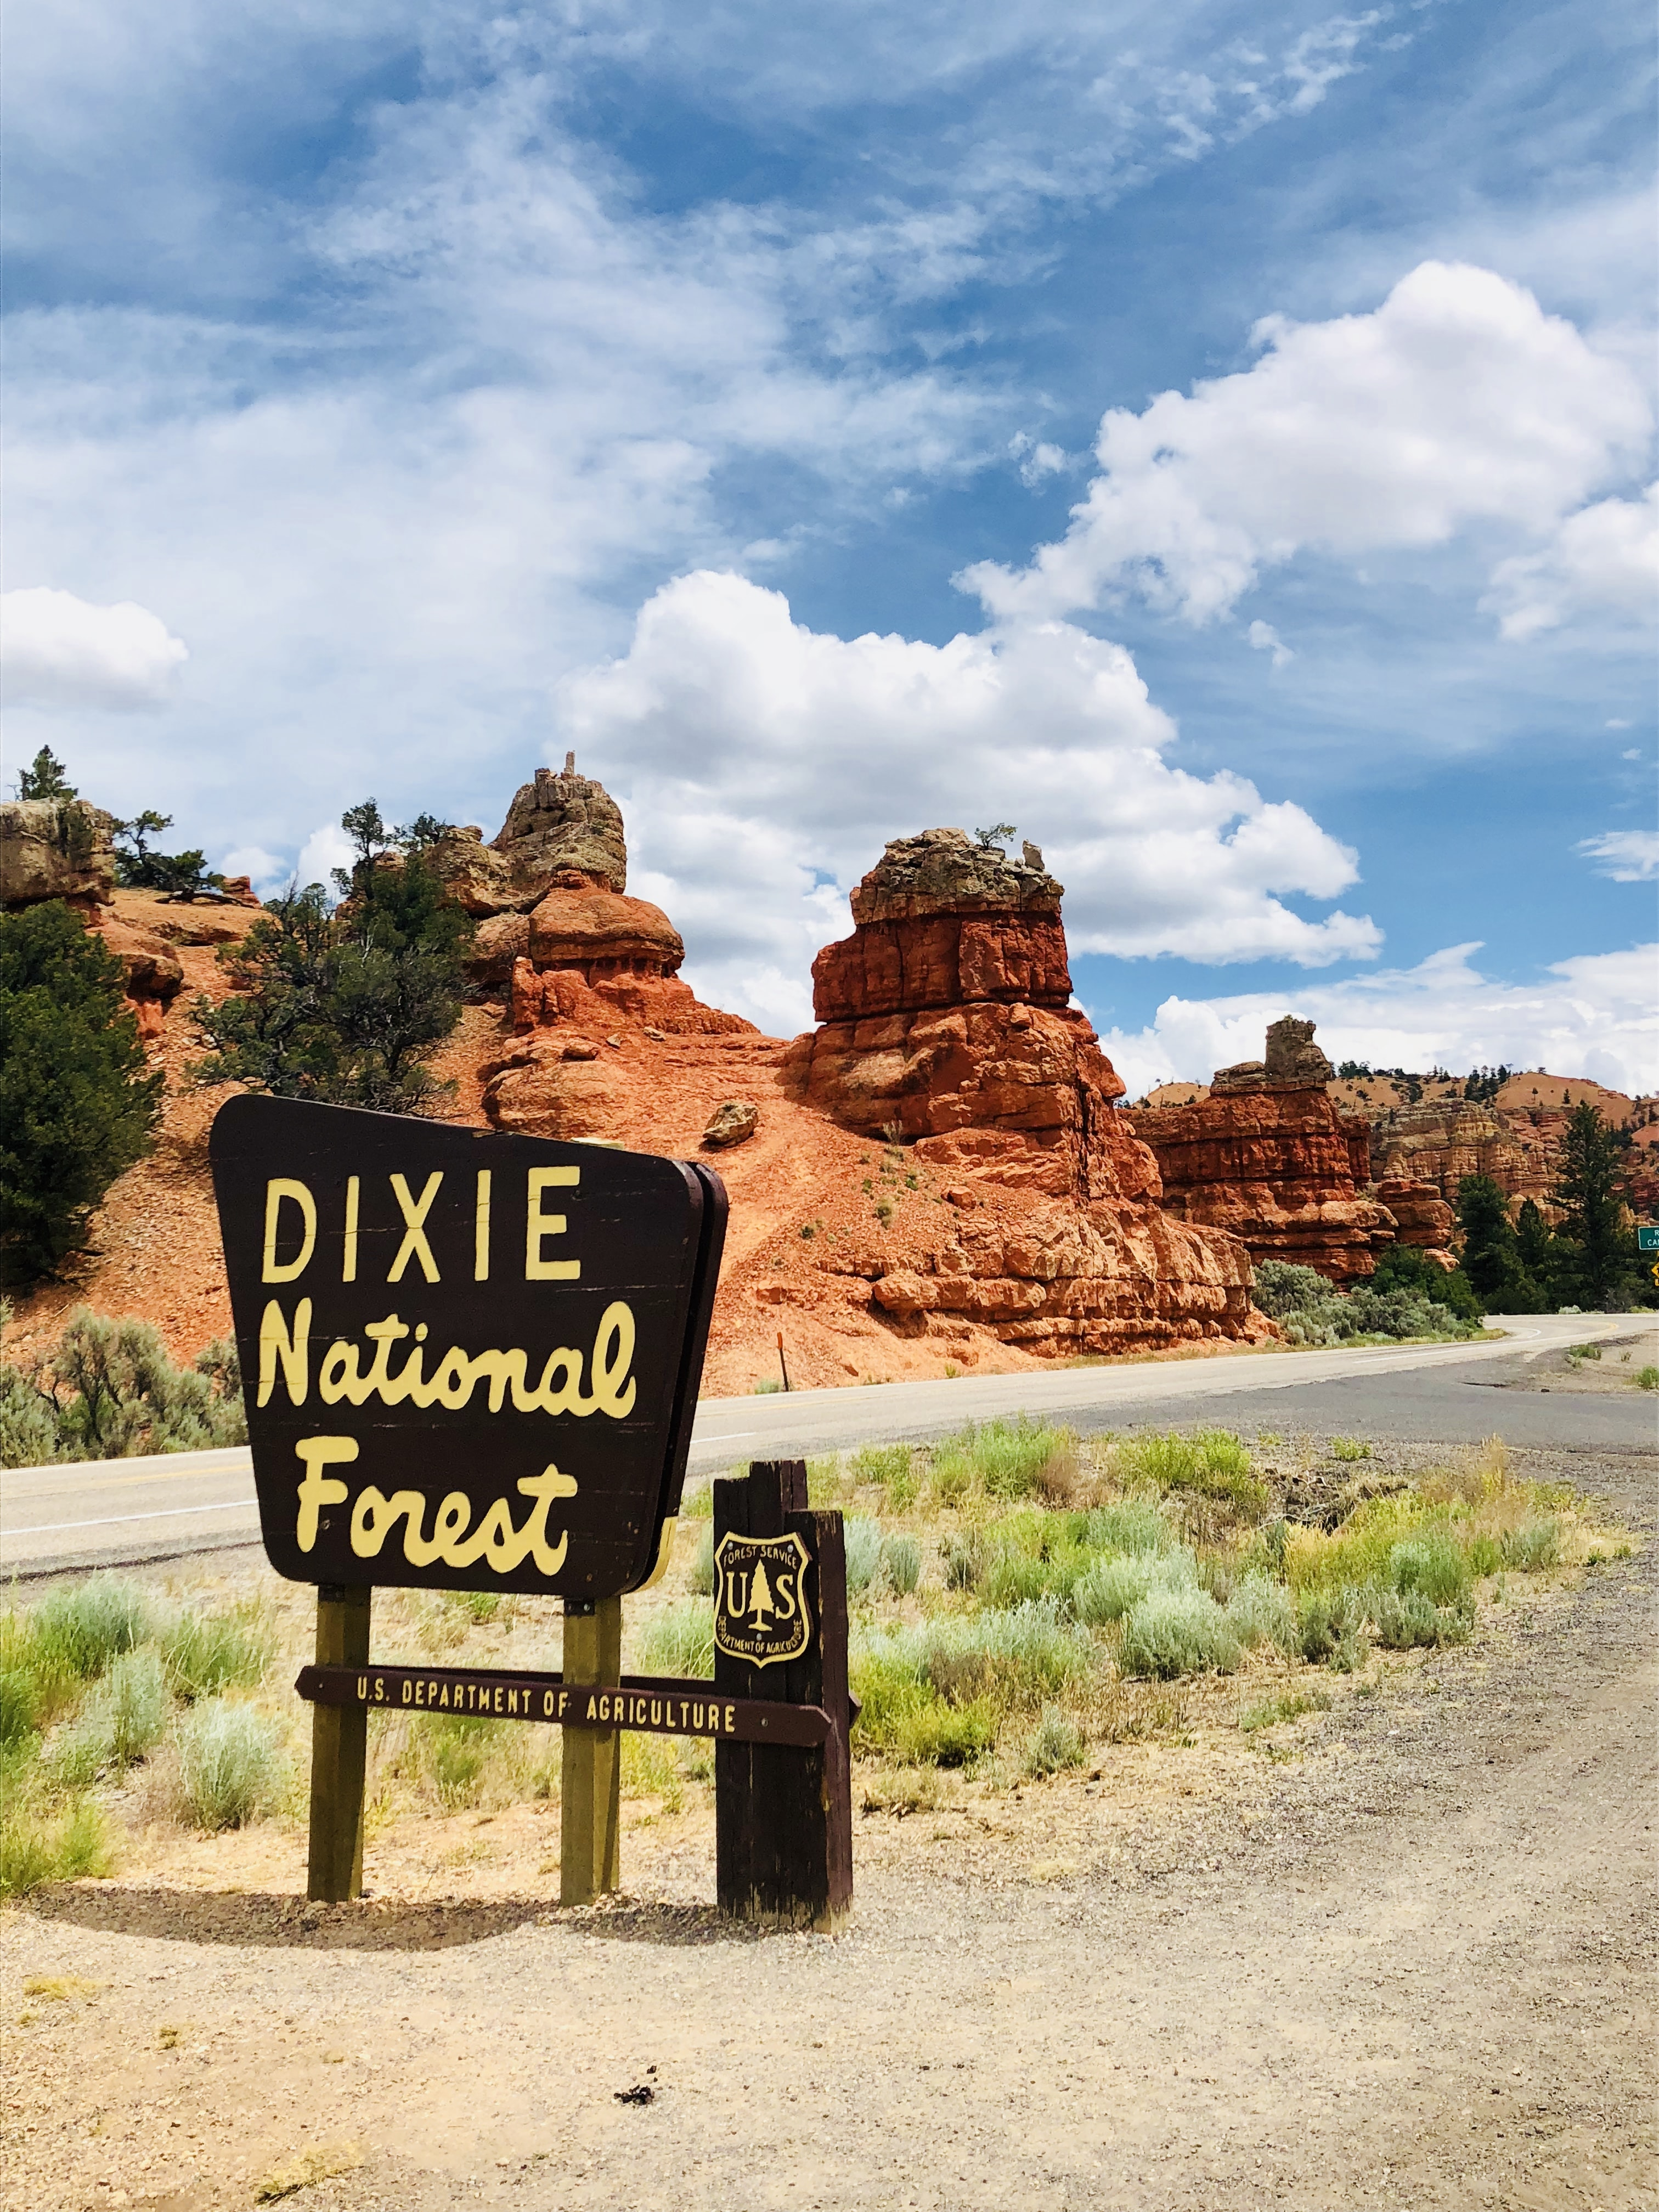 Dixie National forest sign near road